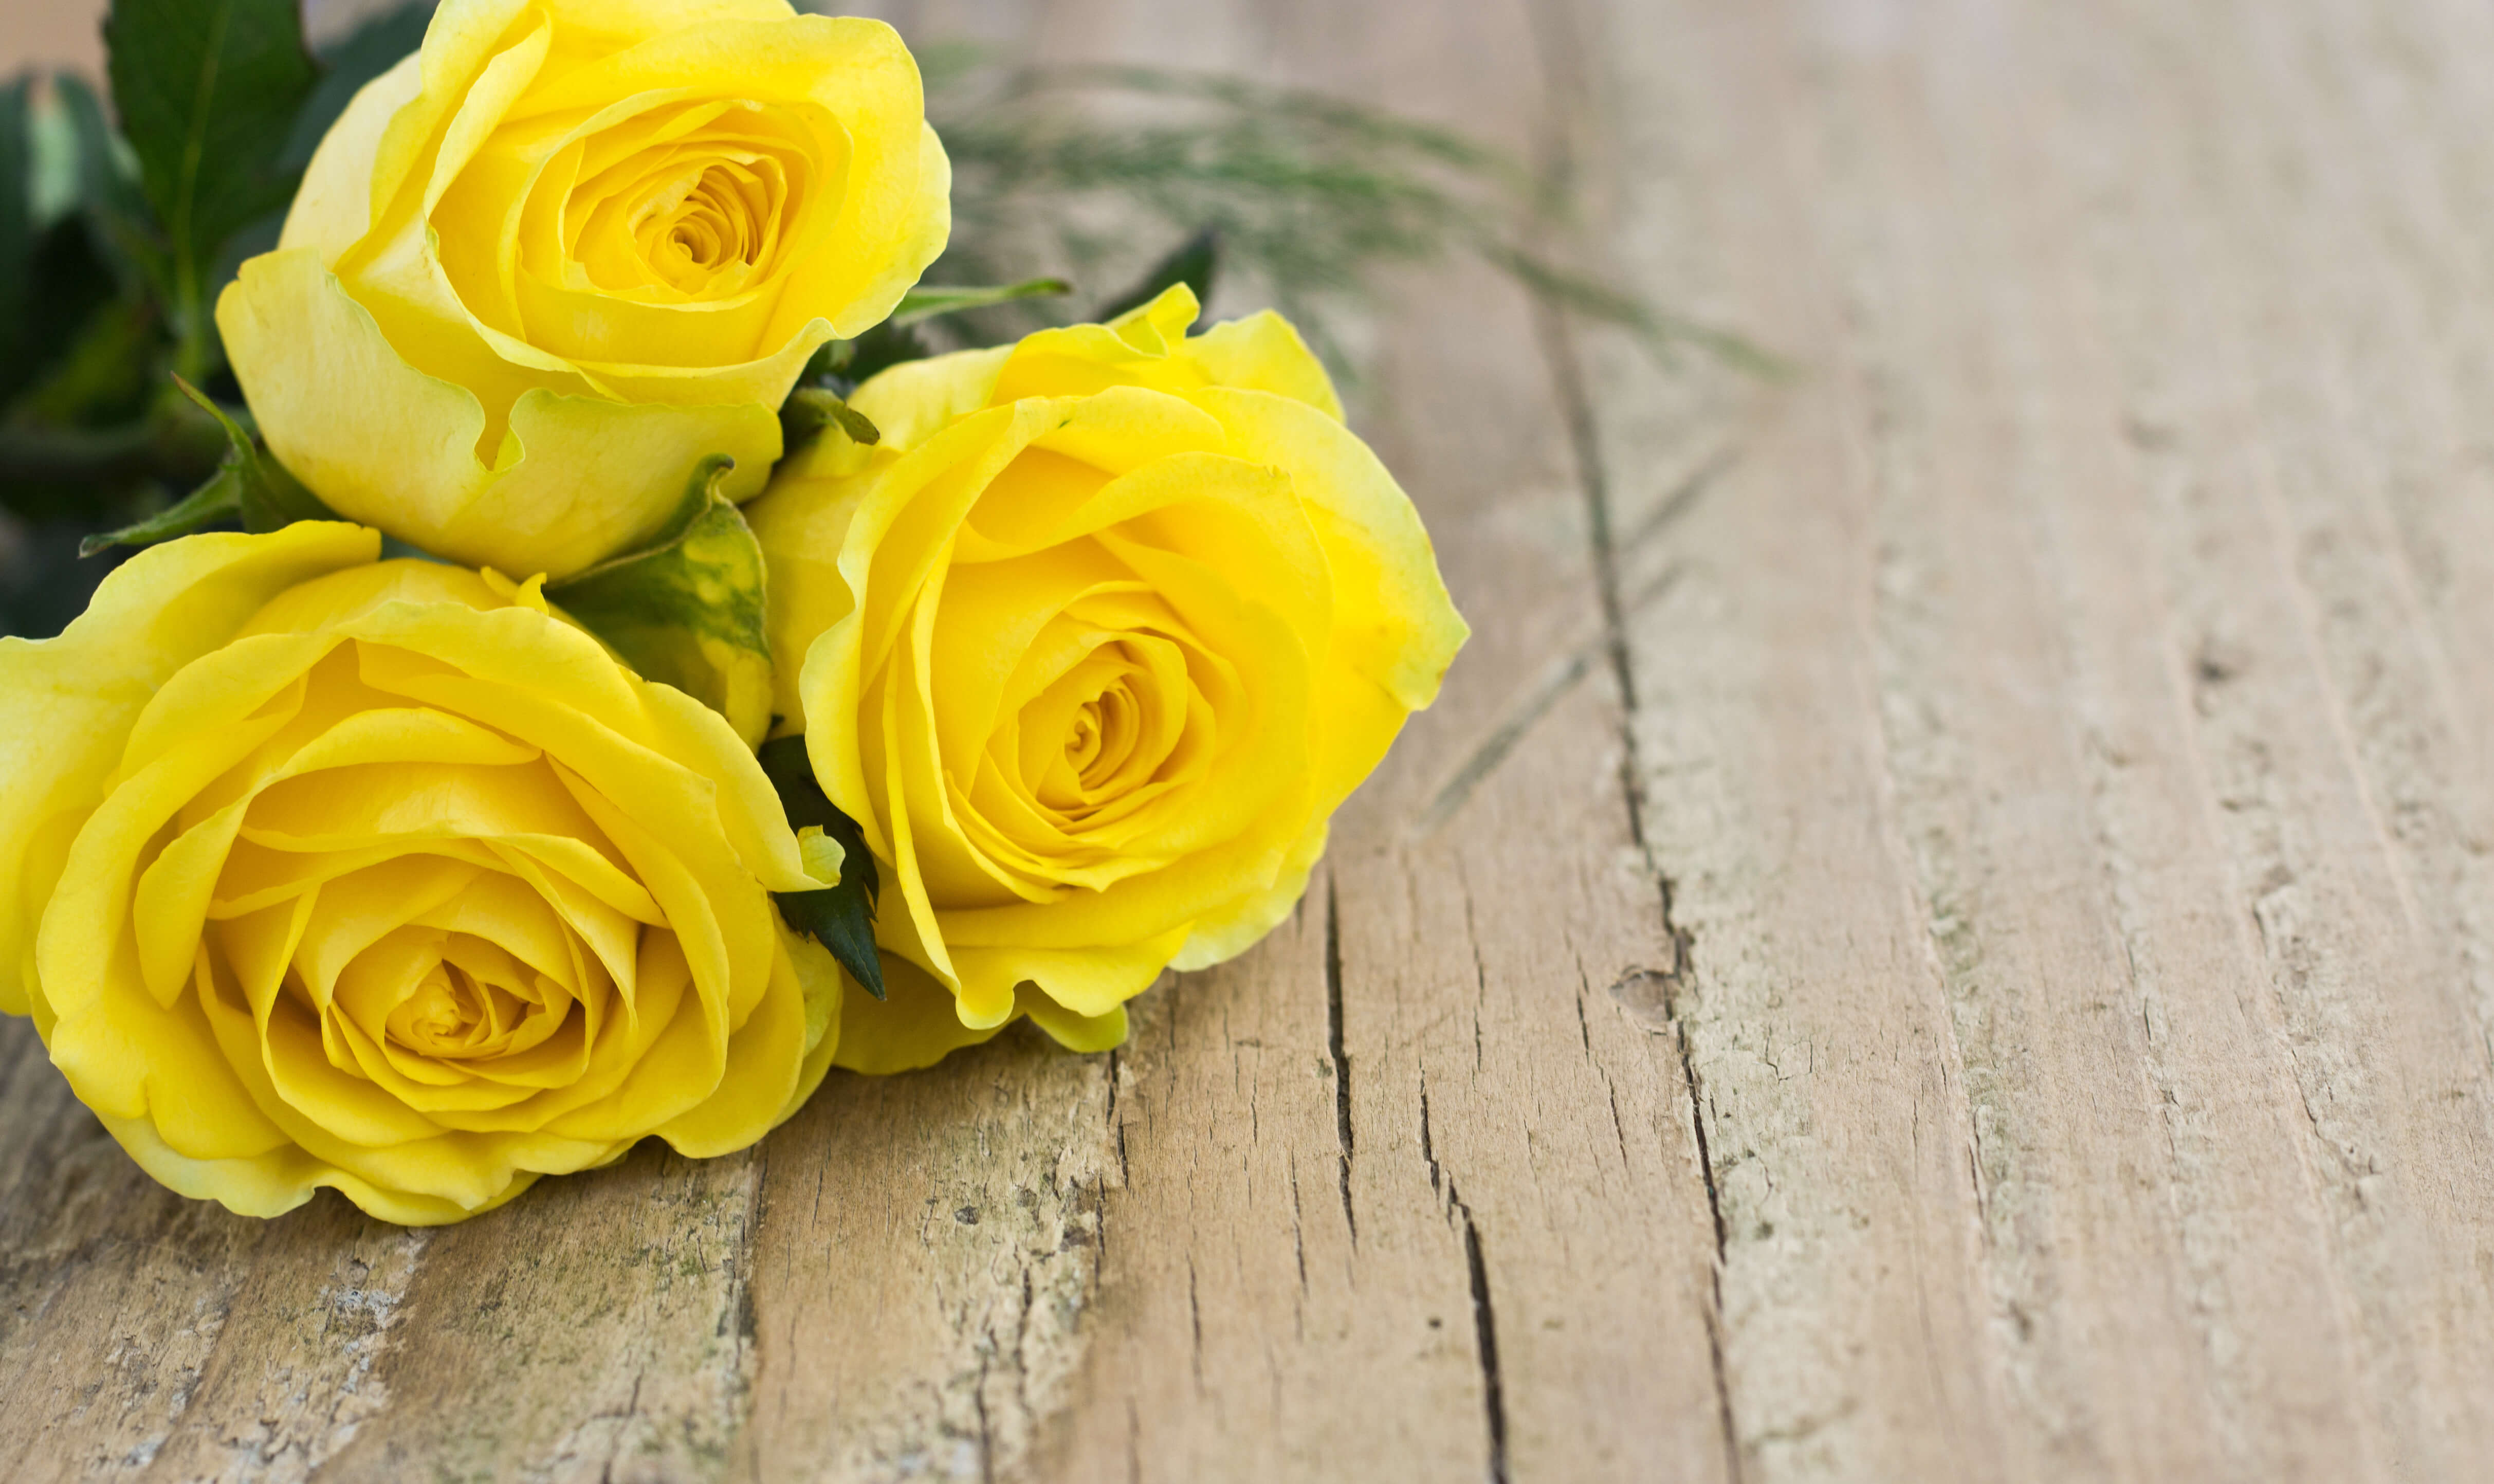 Ultimate yellow rose meaning symbolism guide goldflorist ultimate yellow rose meaning guide mightylinksfo